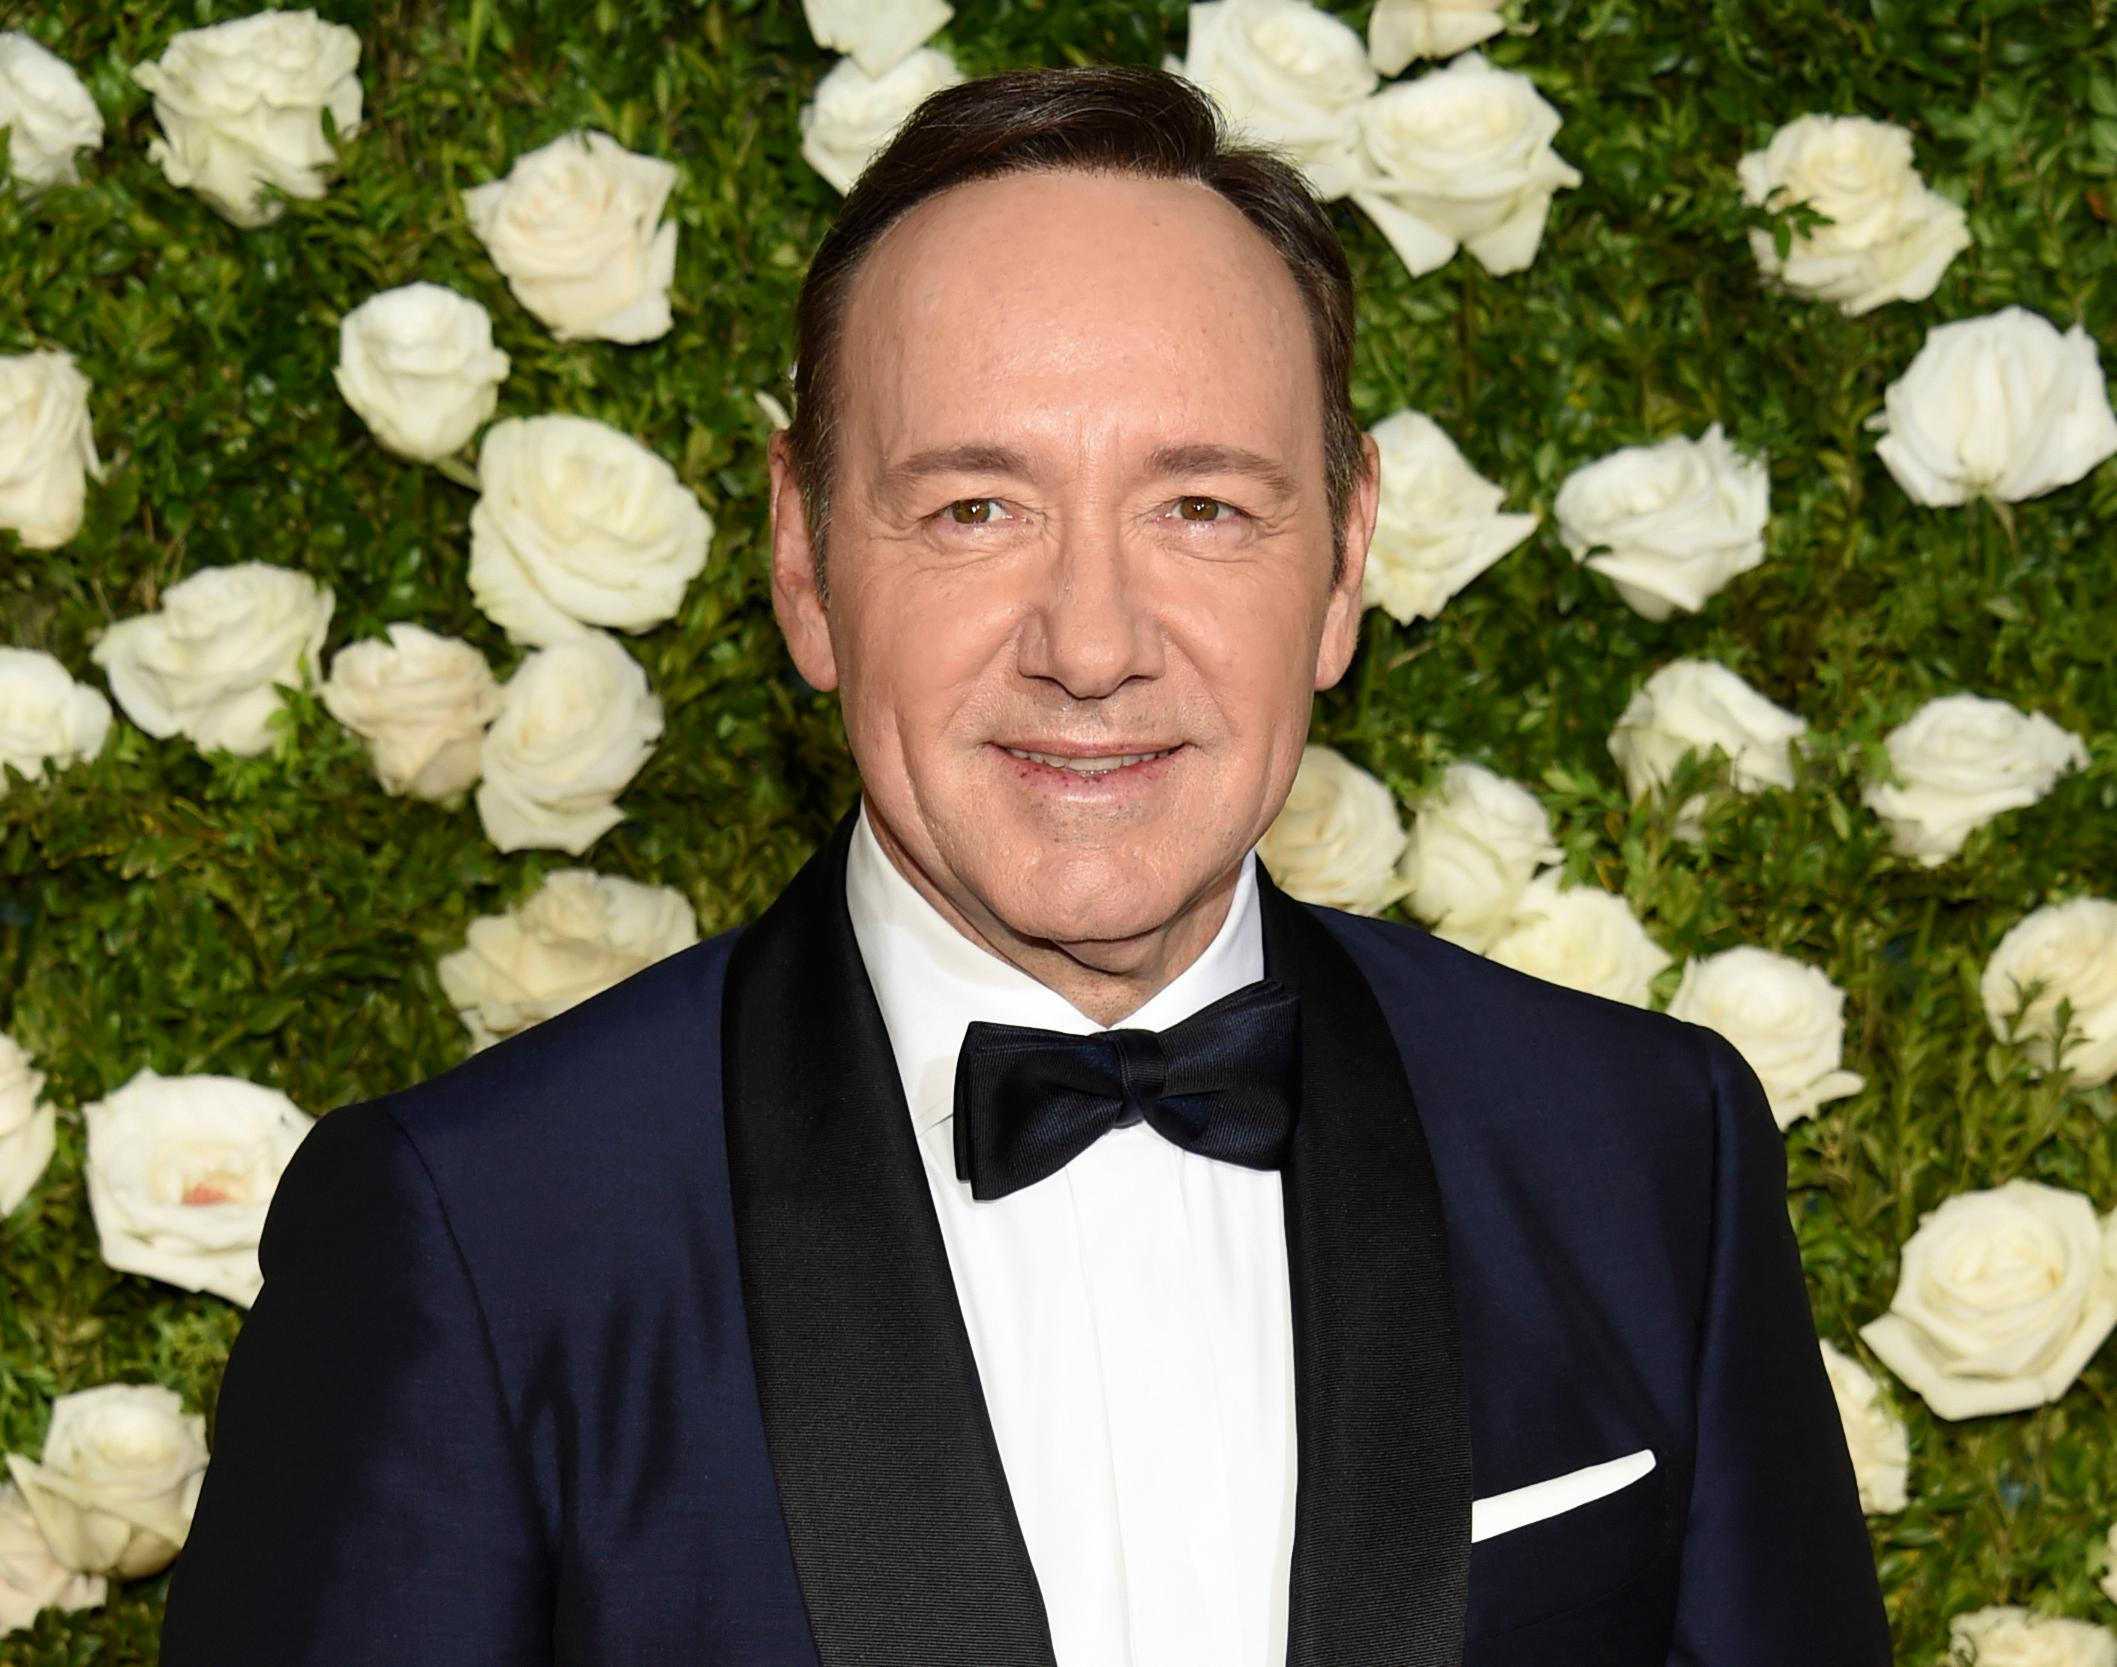 FILE - In this June 11, 2017 file photo, Kevin Spacey arrives at the 71st annual Tony Awards at Radio City Music Hall in New York. High-profile sex-related accusations against celebrities, politicians and media members have put a spotlight on sex addiction. Skeptics question whether it's a true addiction or a made-up condition used by misbehaving VIPs to deflect blame.  Spacey has been accused by at least two dozen men of sexual misconduct or assault. A former publicist for Spacey said he is seeking unspecified treatment.(Photo by Evan Agostini/Invision/AP, File)